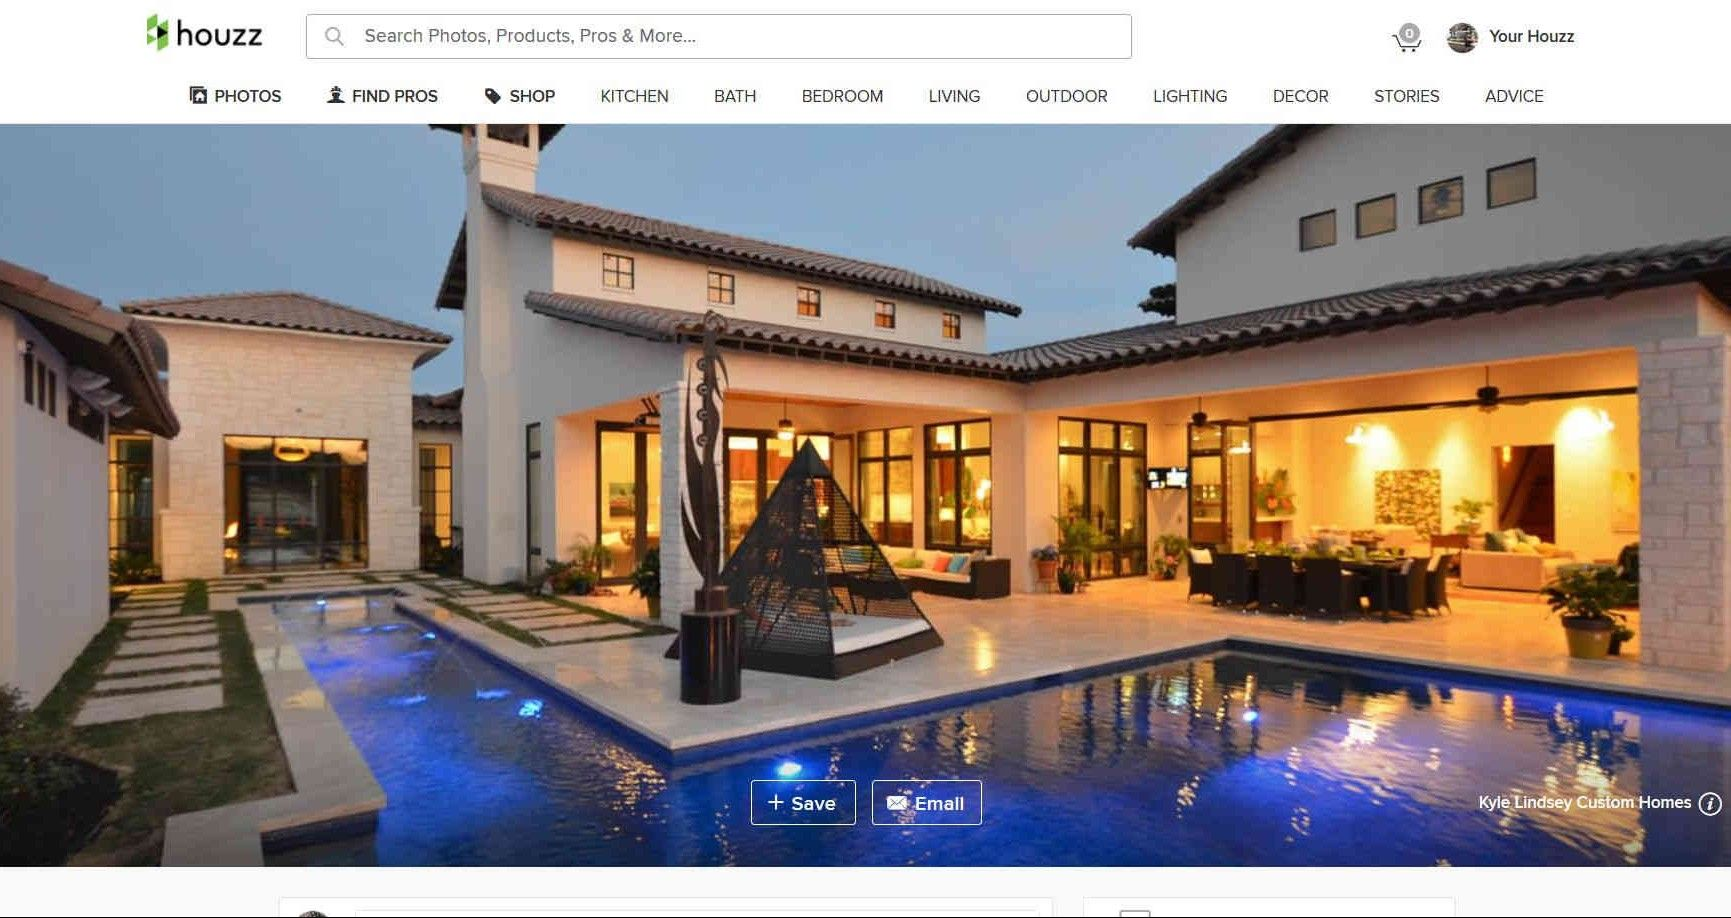 Houzz Design App Review Unlimited Home Design and DIY